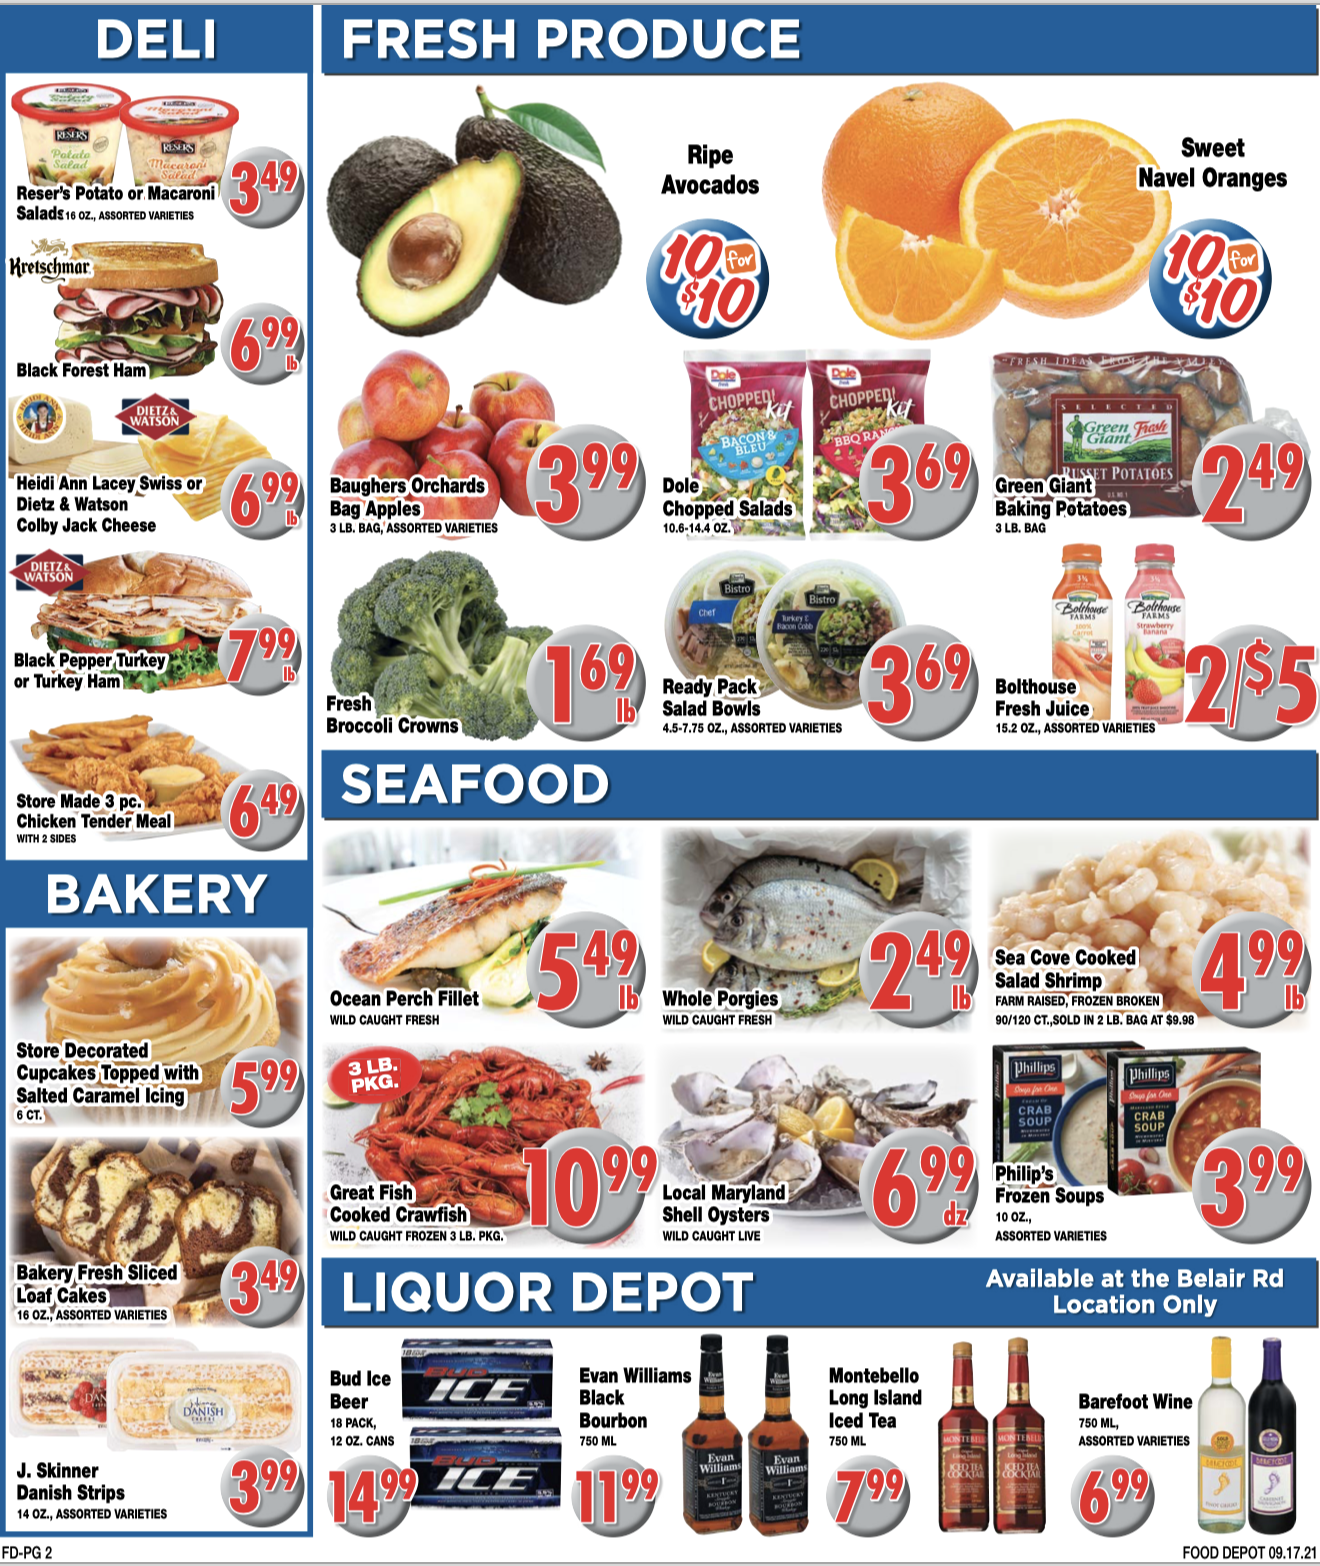 This Week's Specials - page 2